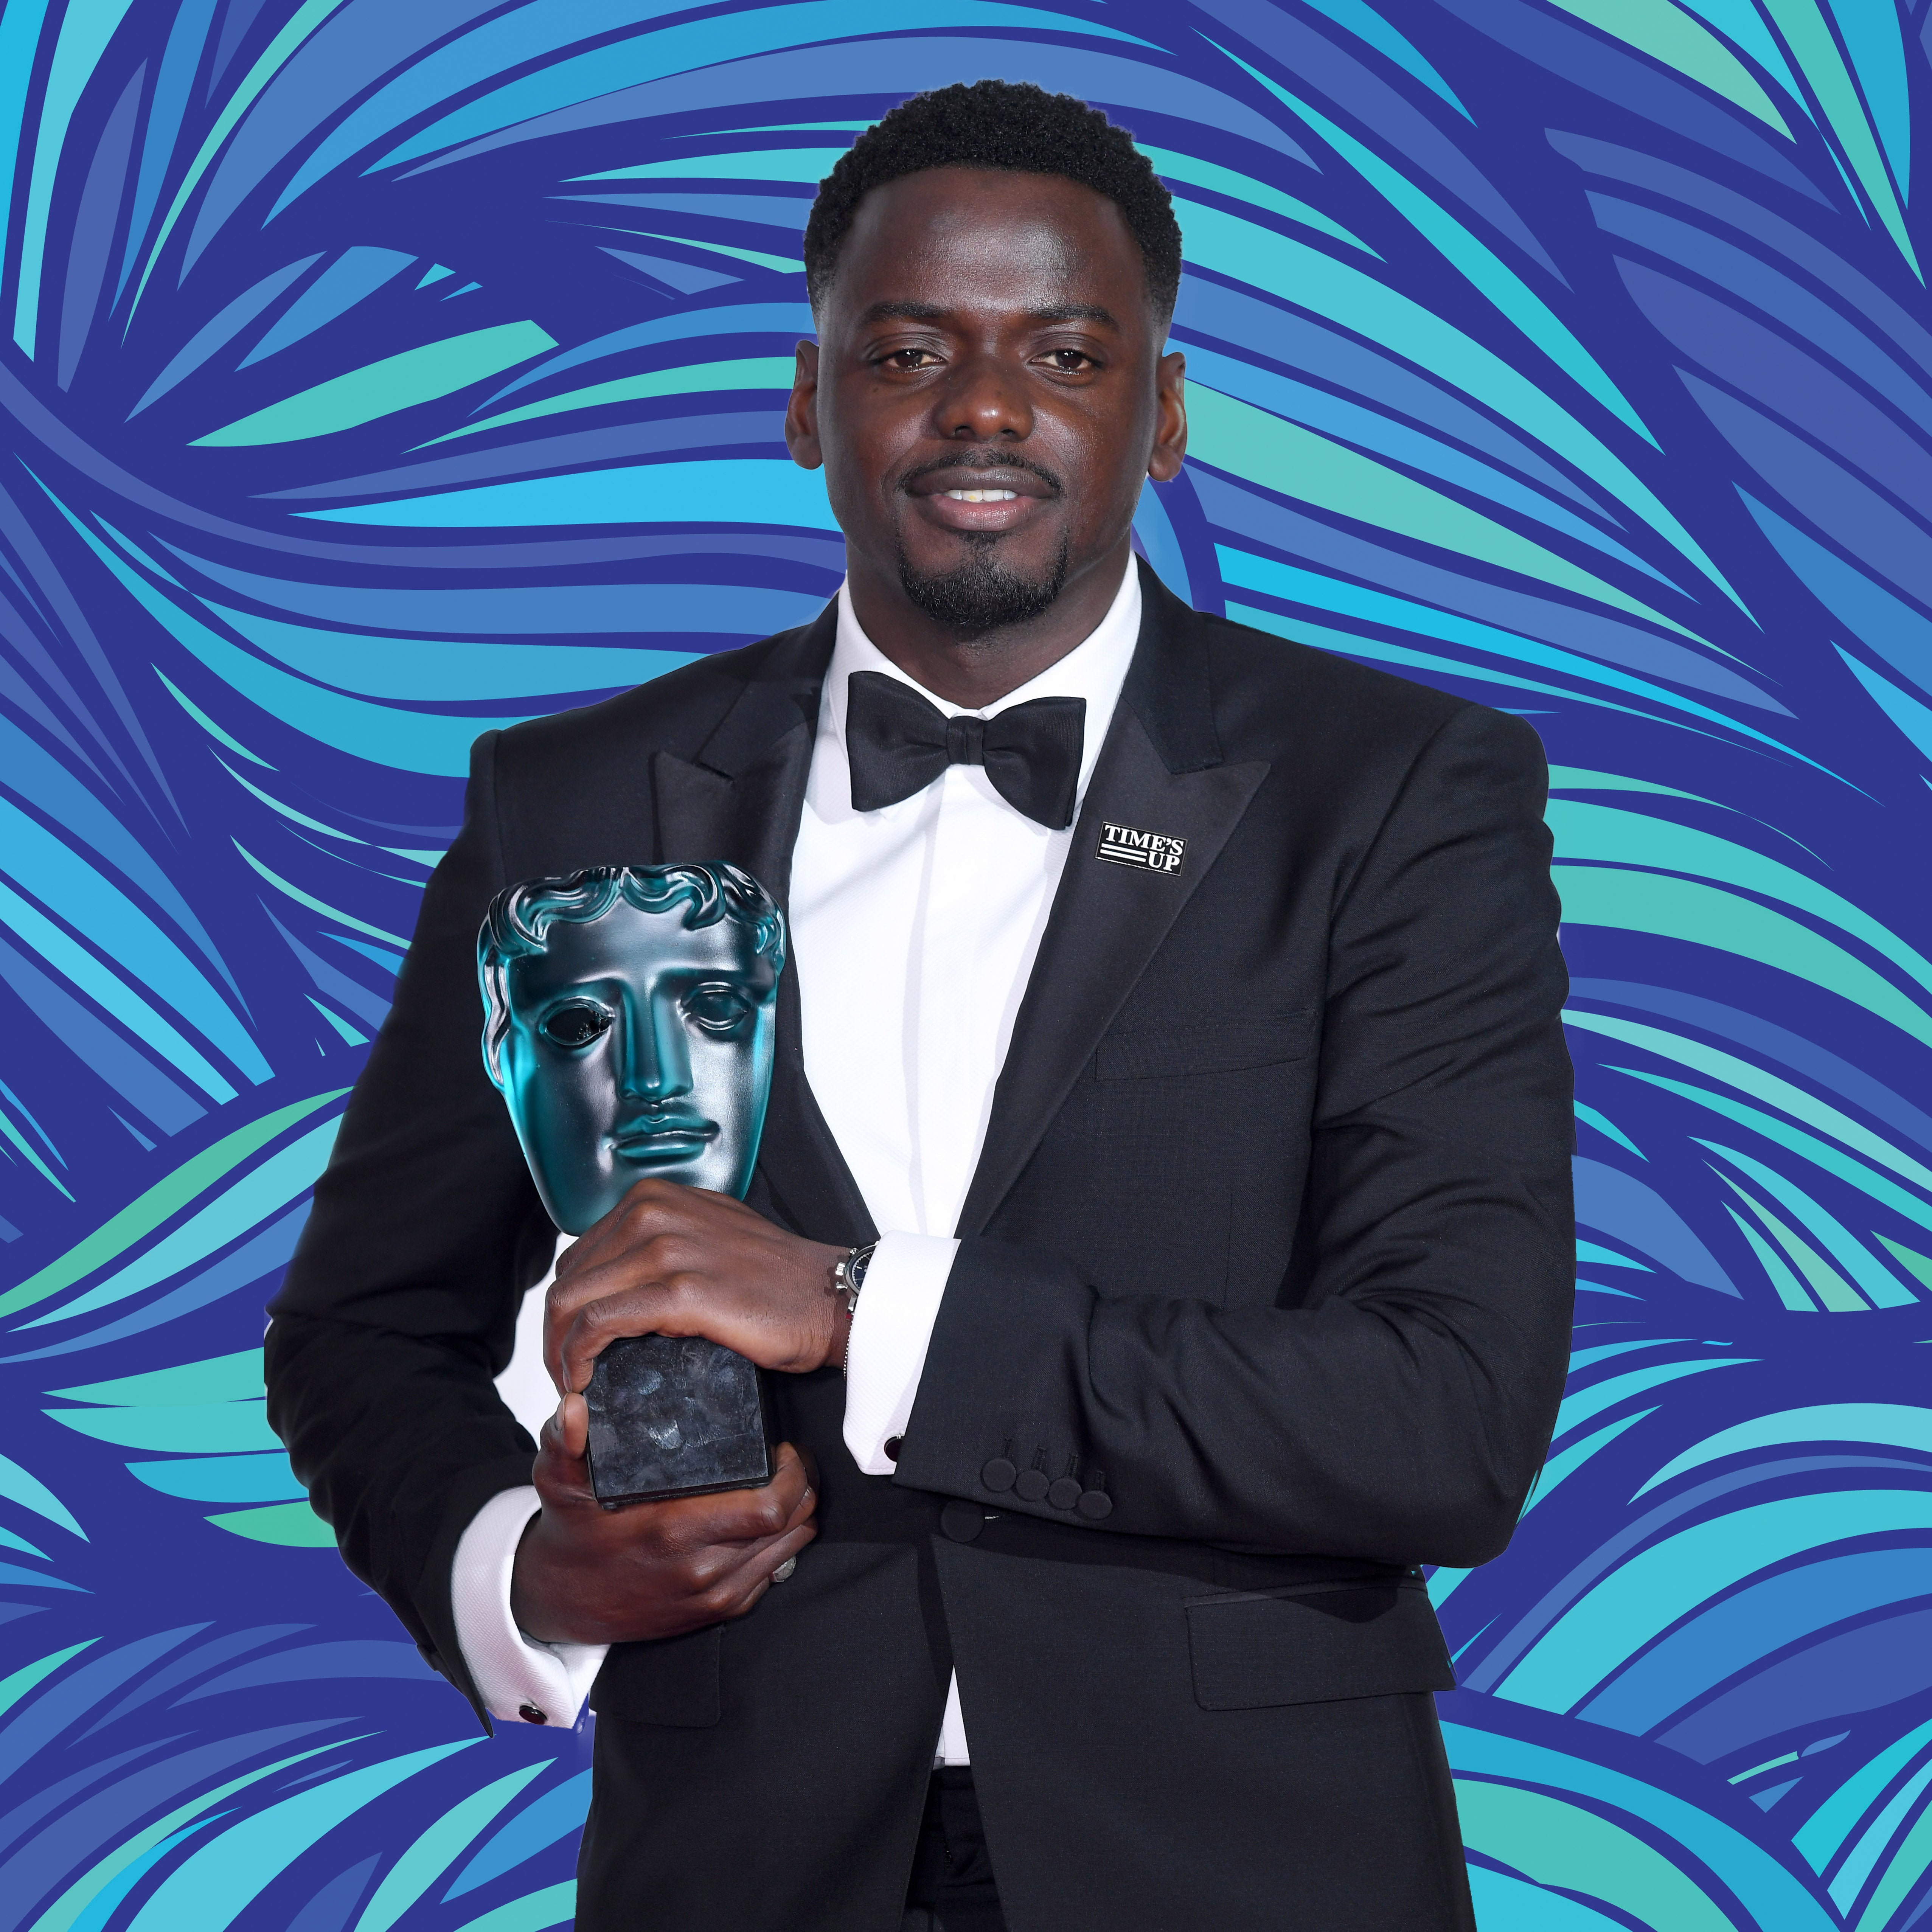 Daniel Kaluuya Emotionally Thanks His Mother During BAFTA Acceptance Speech: 'You're The Reason Why I'm Here'